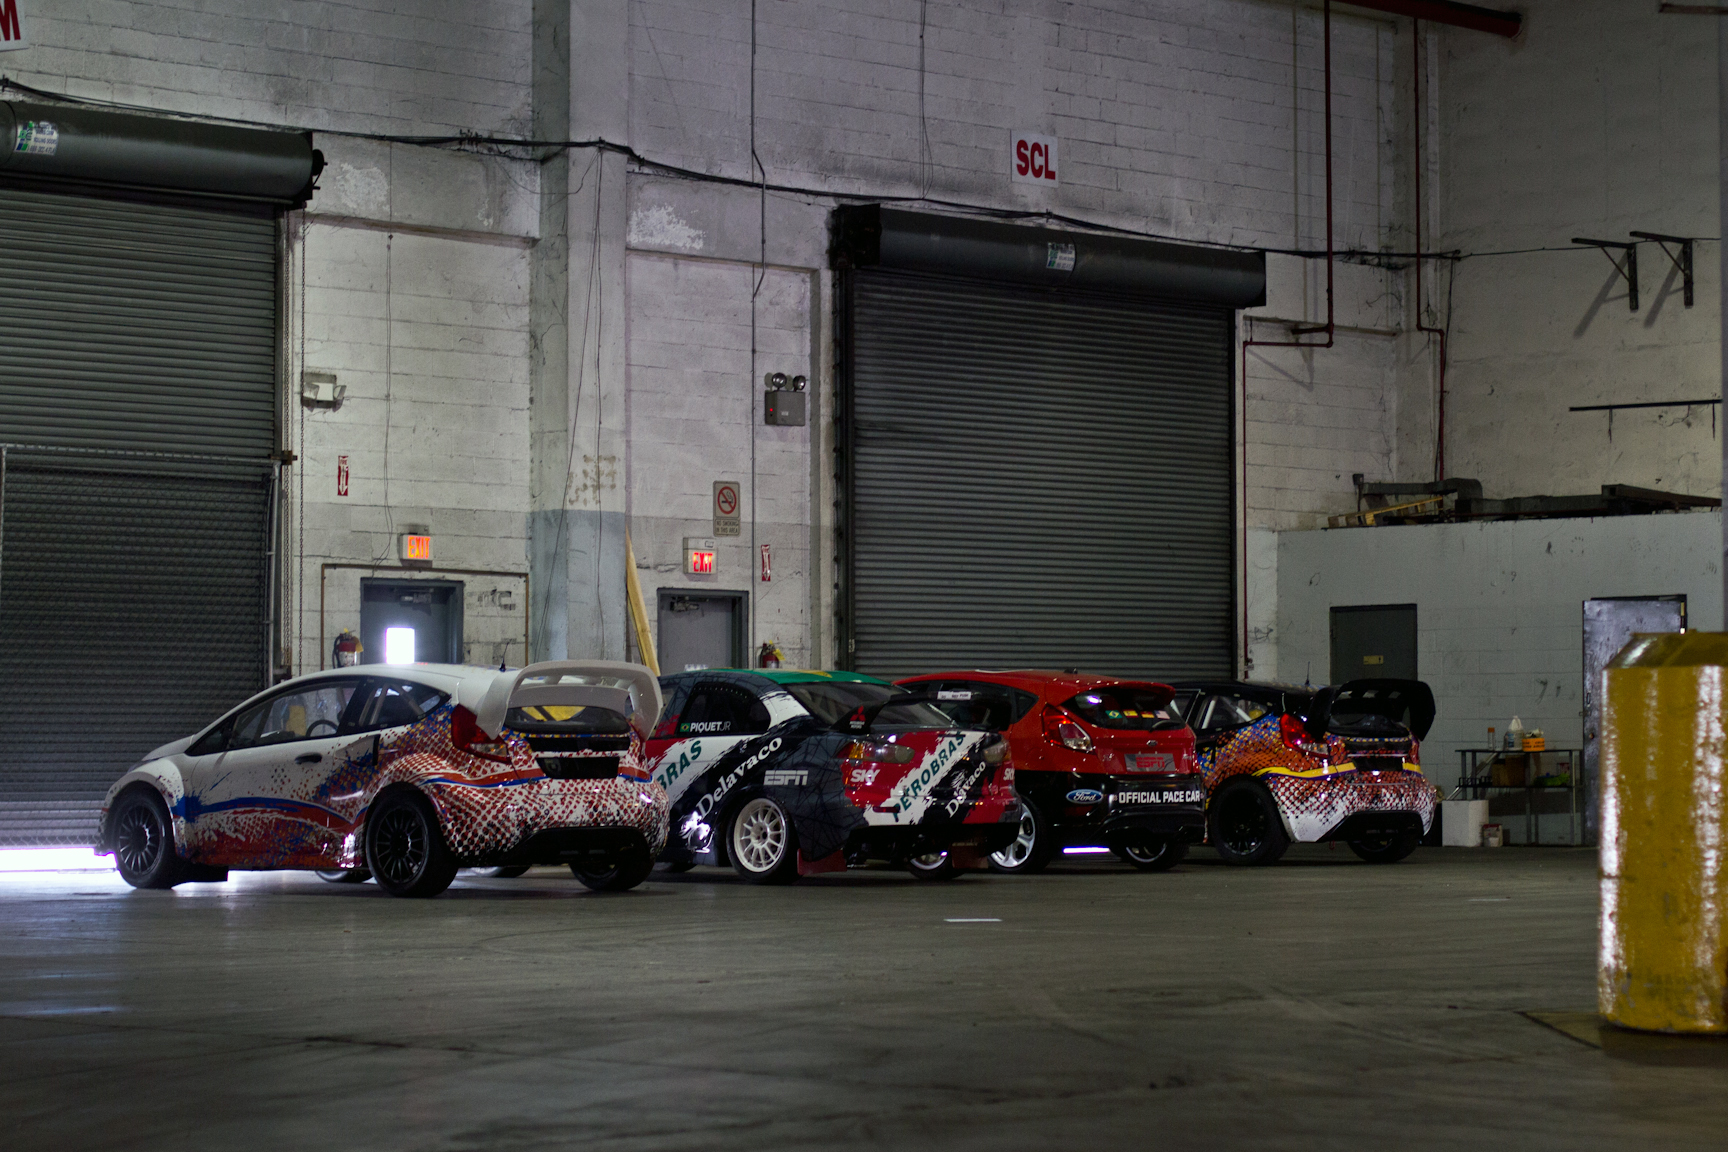 The final four cars waiting to be loaded, stacked and shipped for the X Games RallyCross competition in Foz do Iguaçu, Brazil.